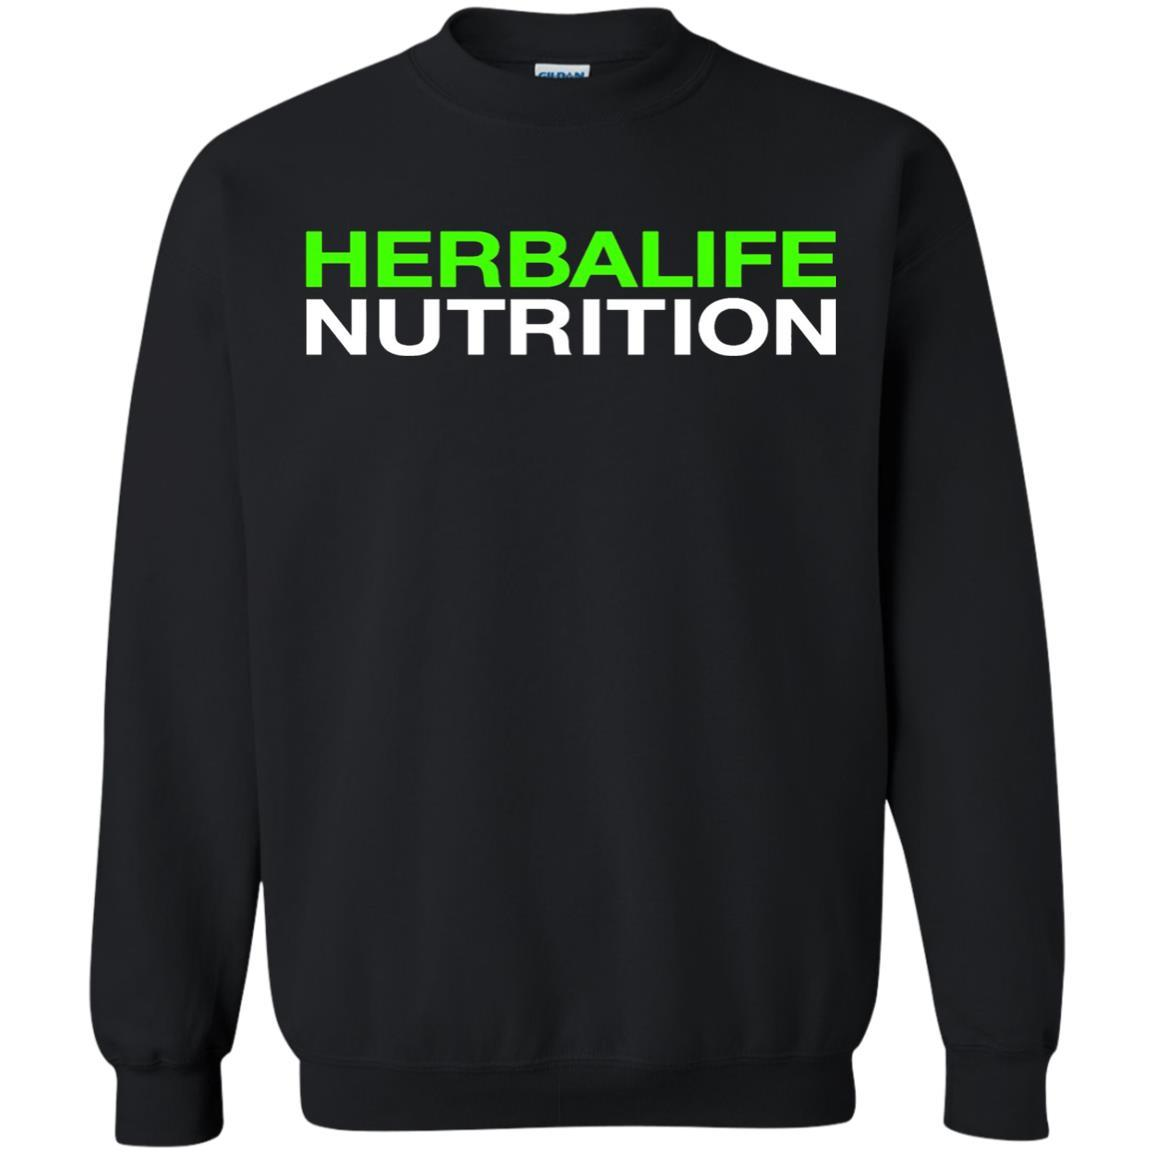 HERBALIFE NUTRITION - Pullover Sweatshirt Style / Color / Size